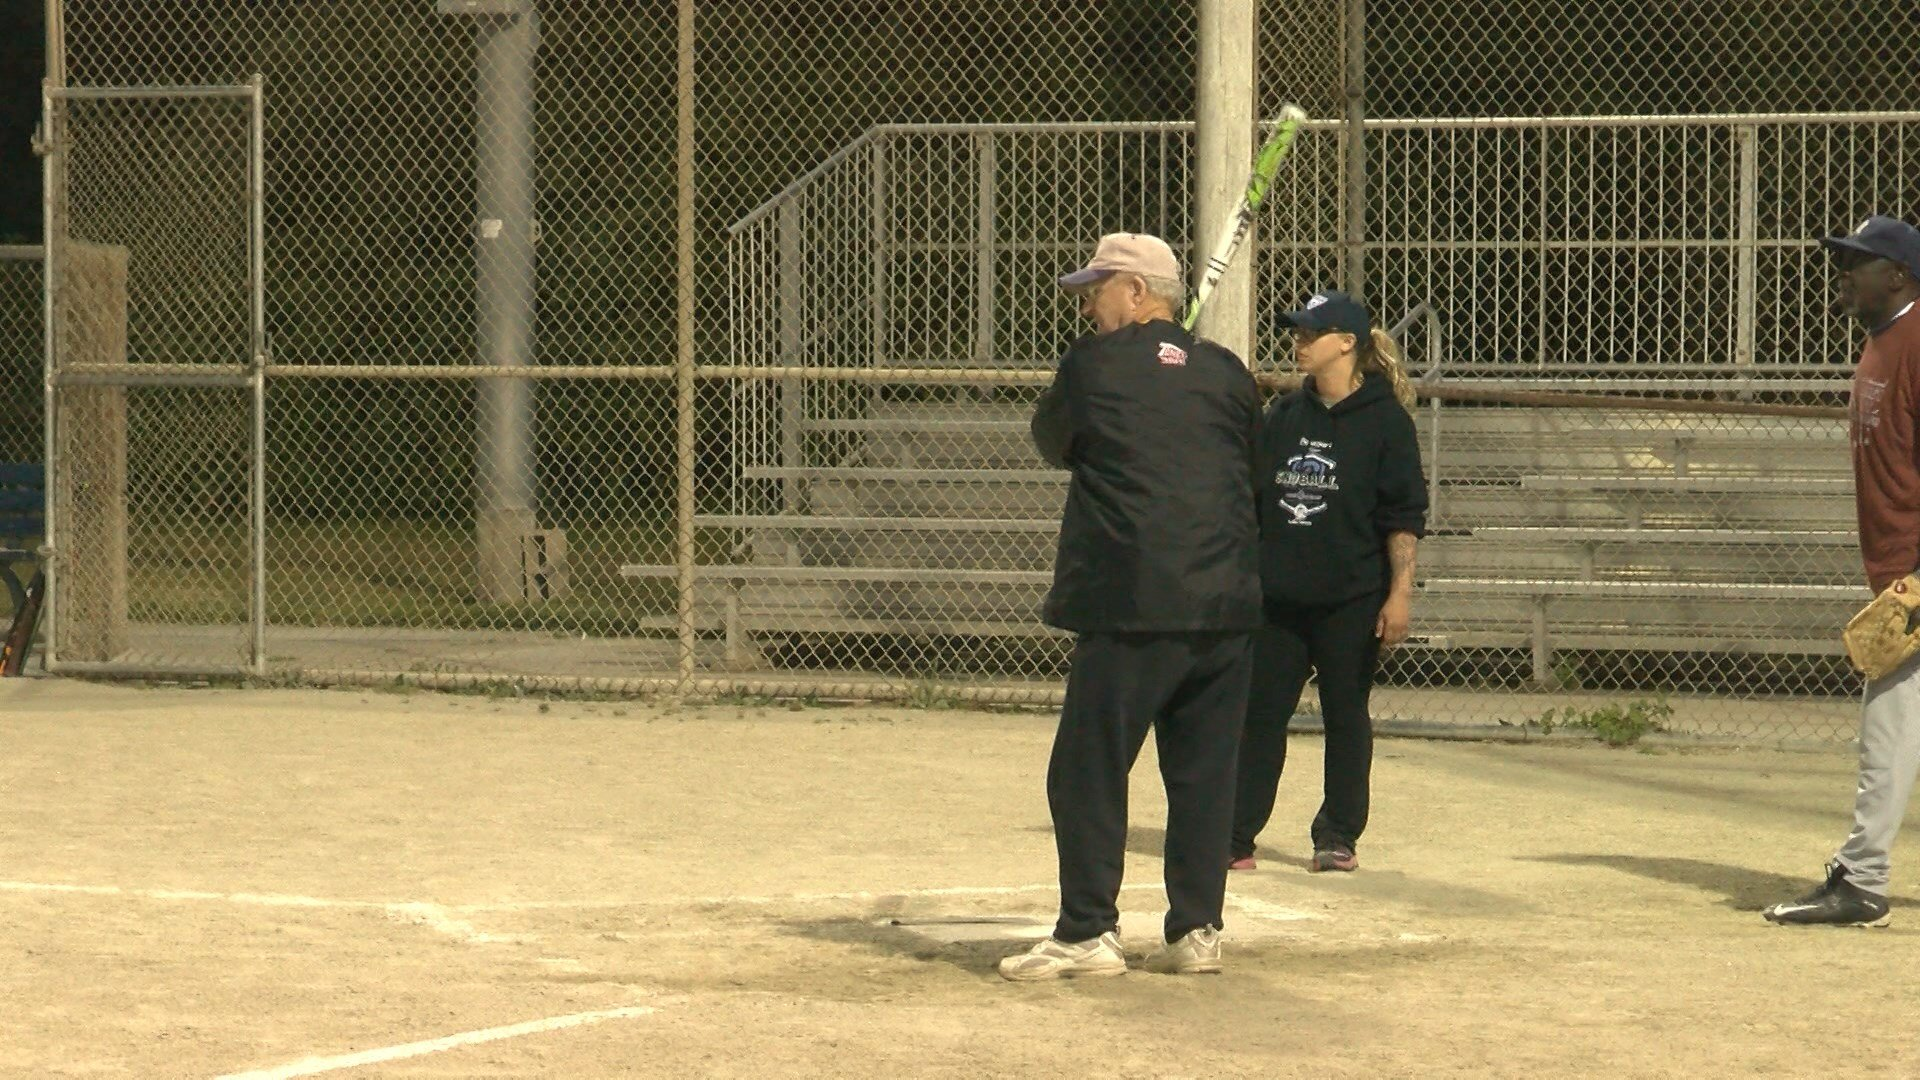 Johnny Bass, 82, plays softball for the Morro Bay South Bay Grays Senior Softball Team. (KSBY photo)